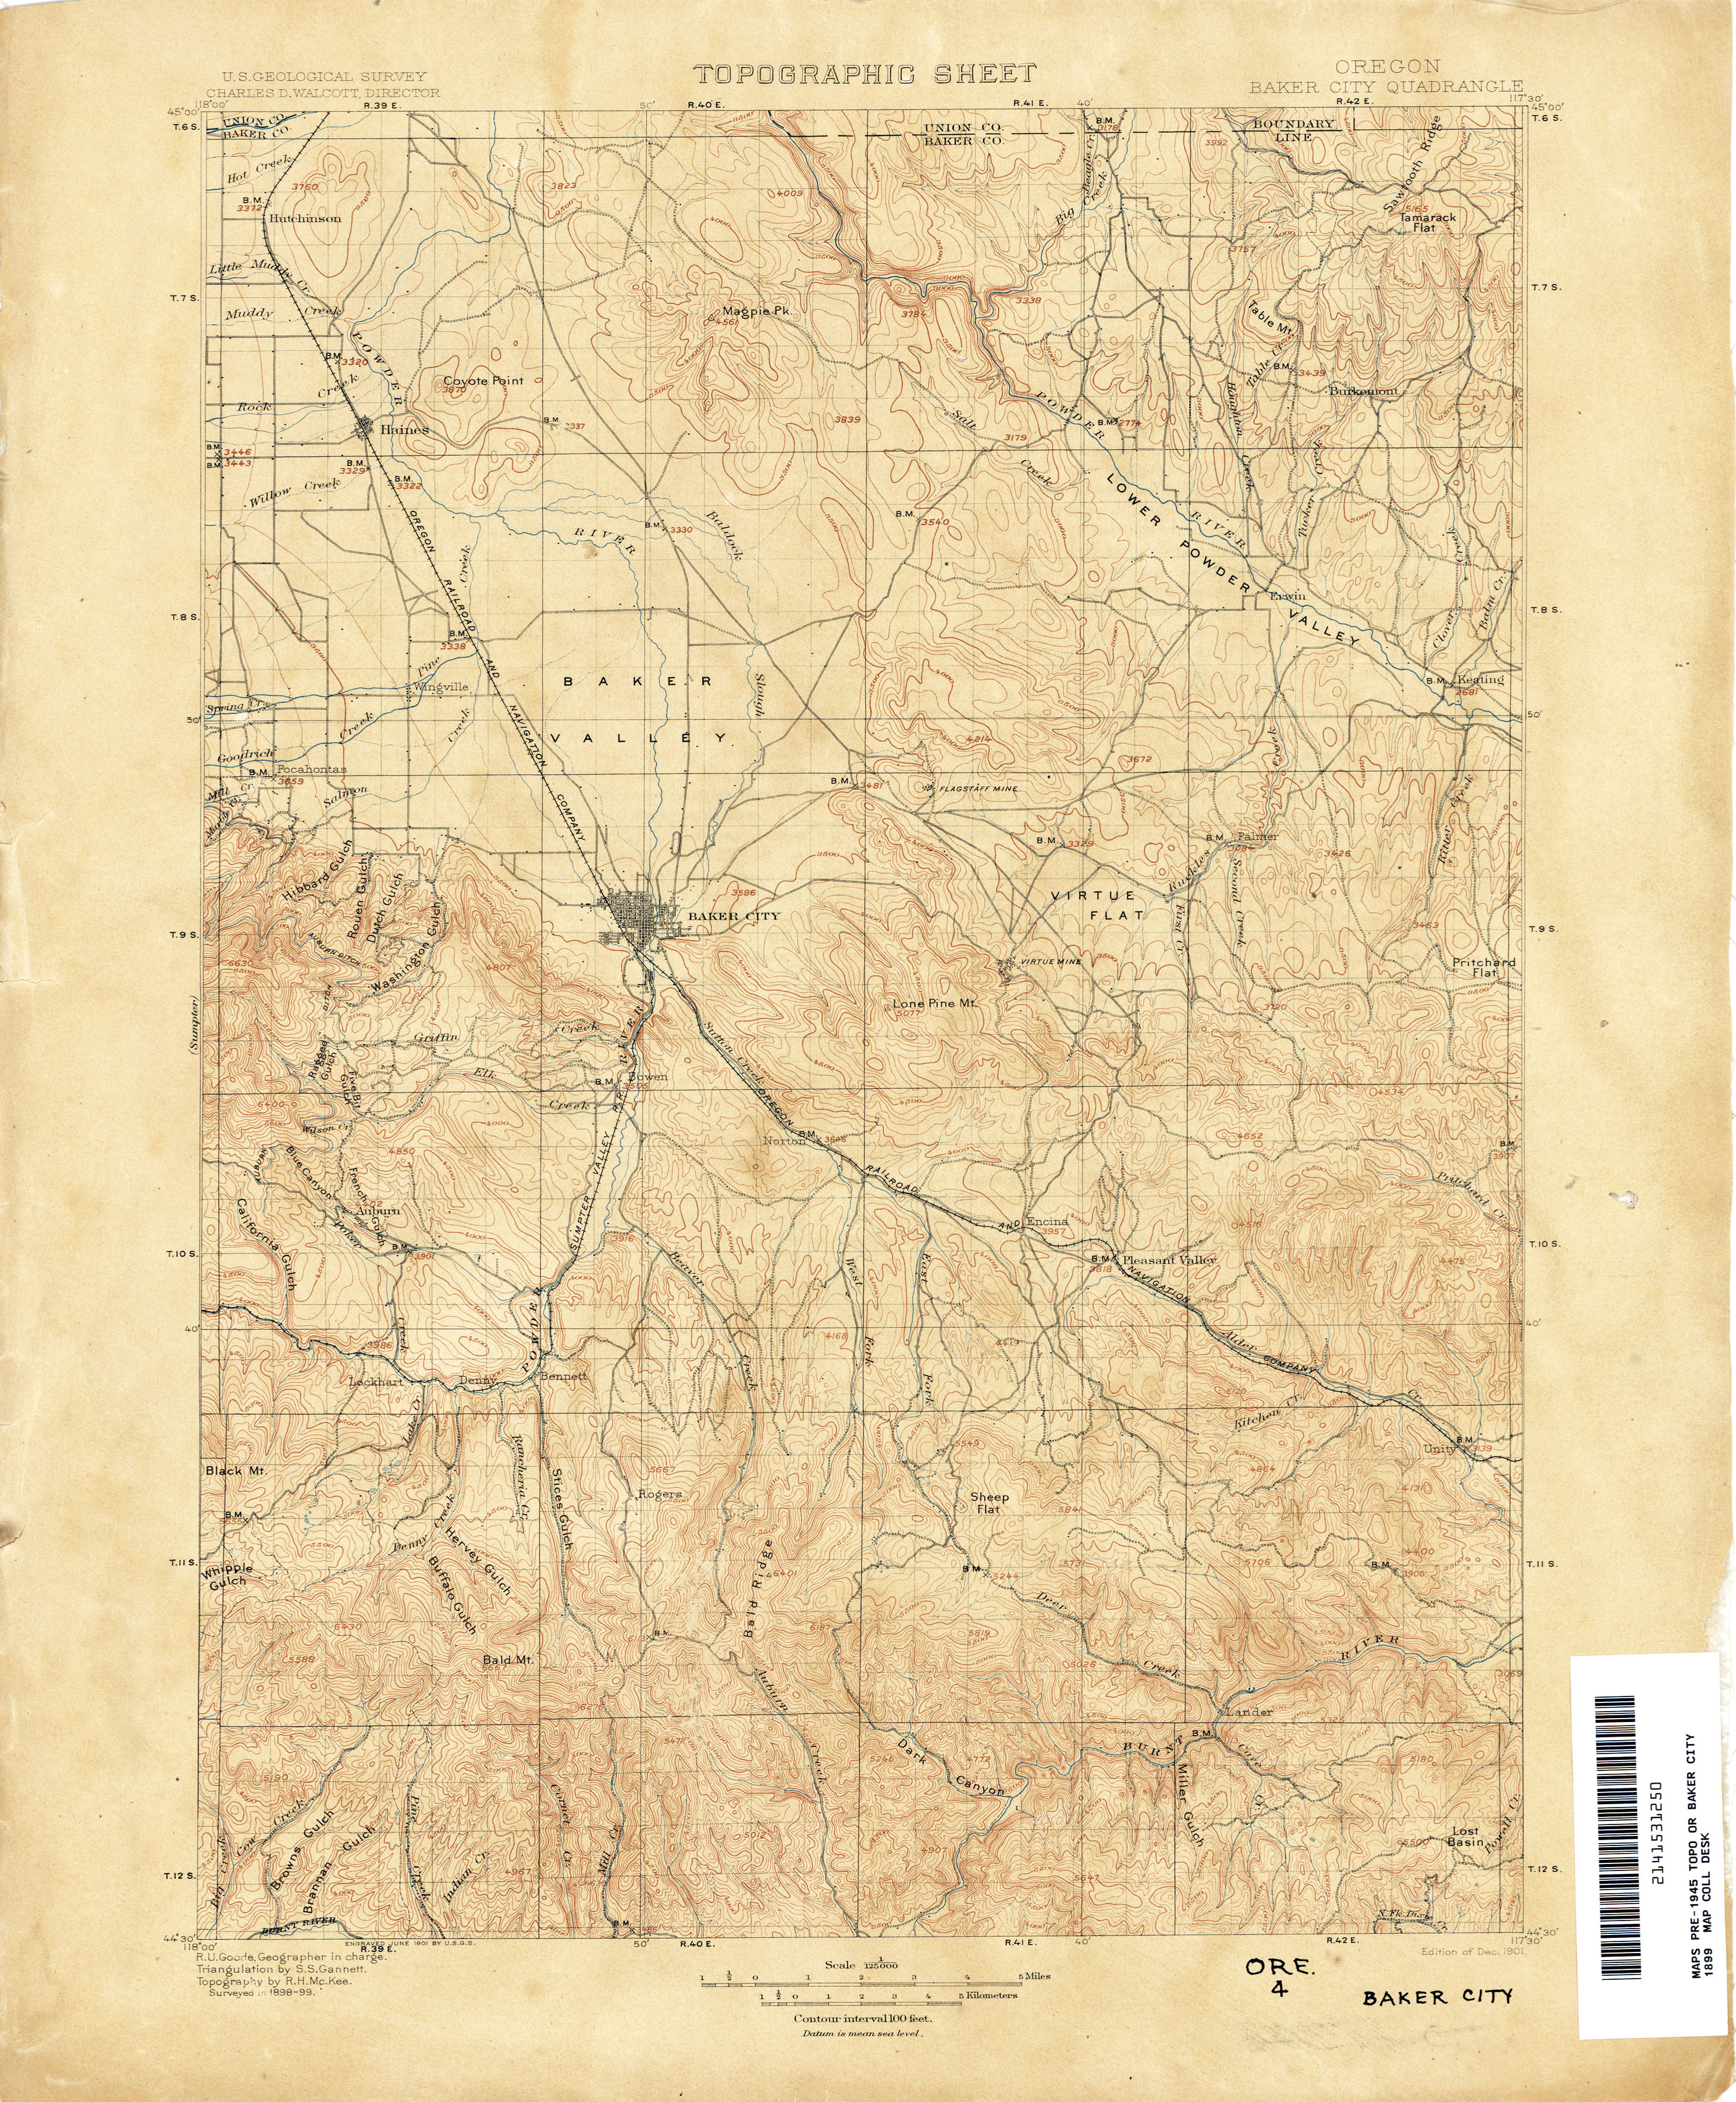 Oregon Historical Topographic Maps PerryCastañeda Map - City map of oregon